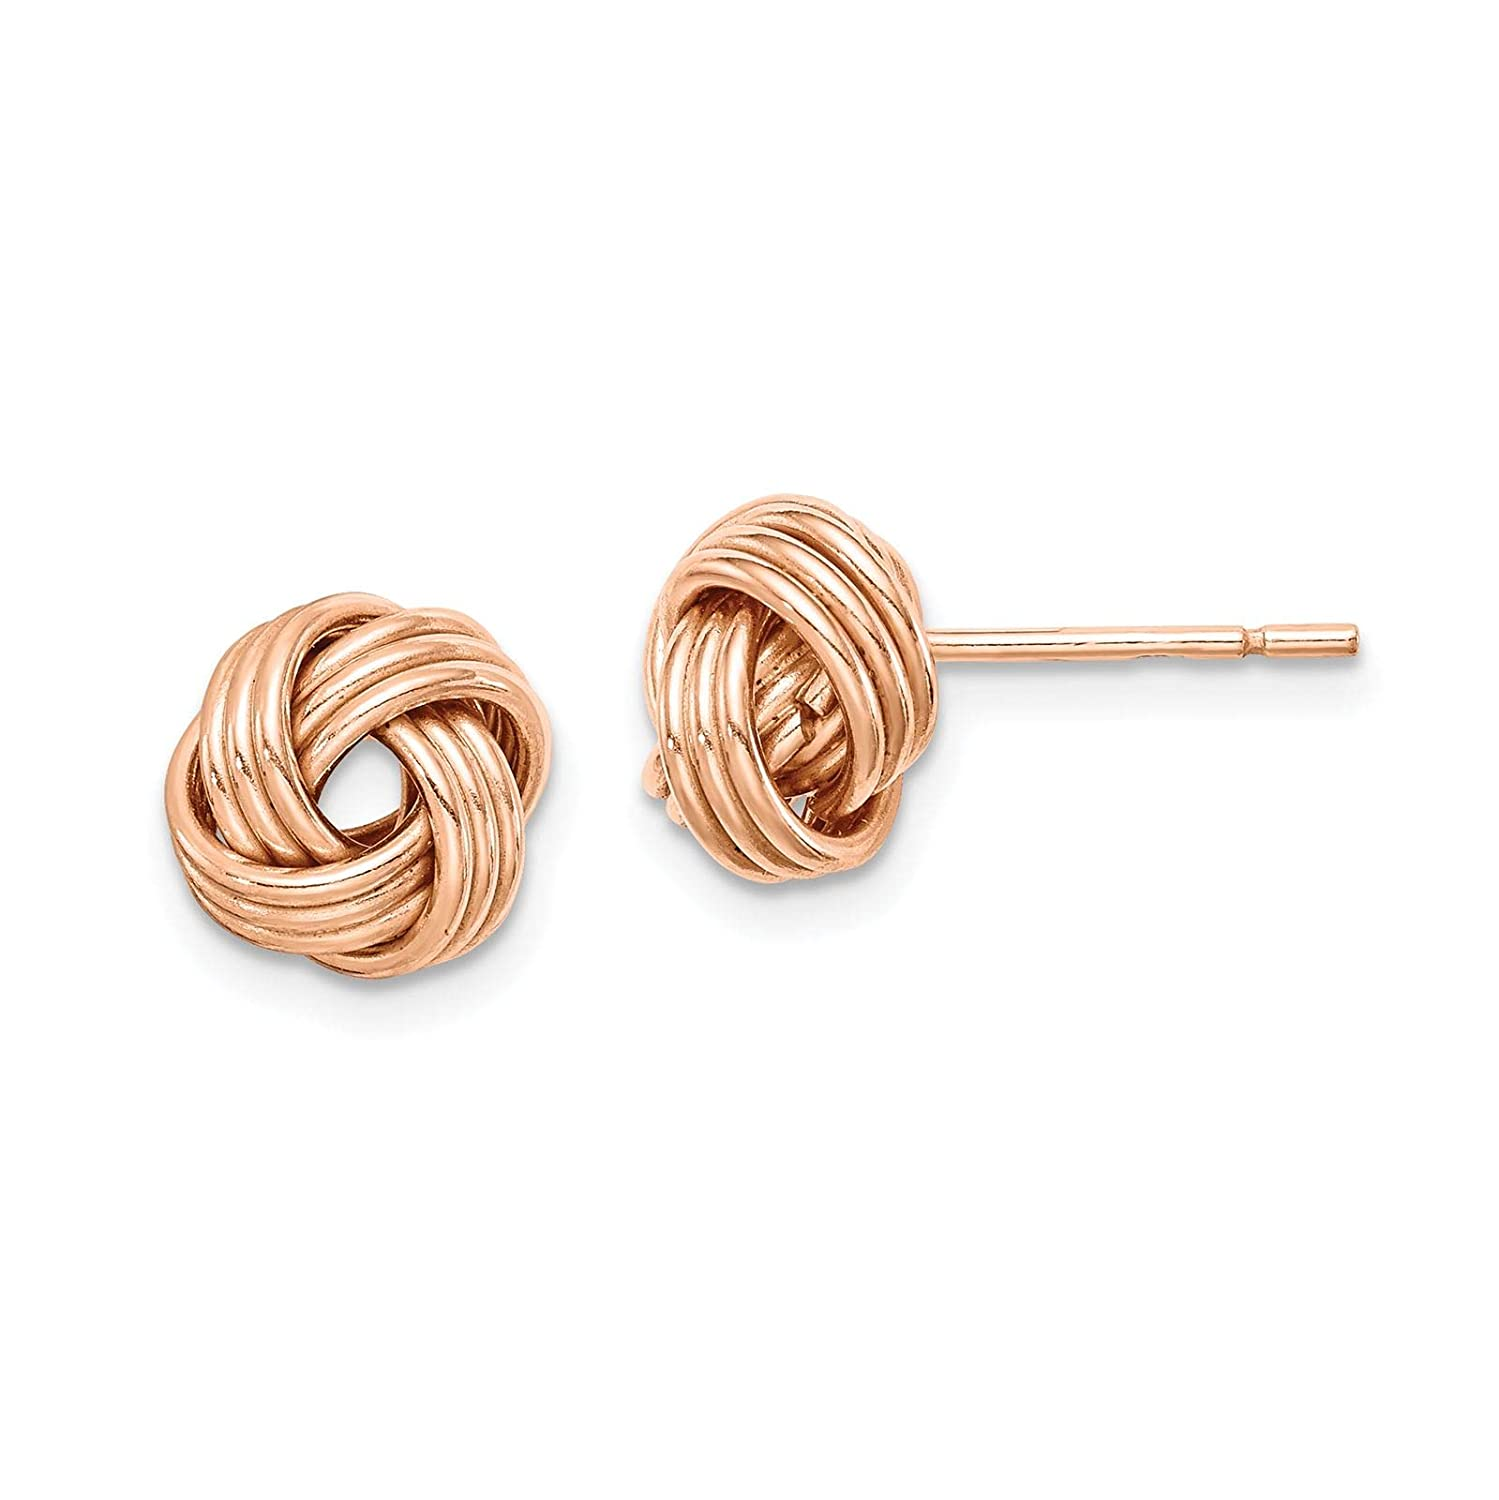 925 Sterling Silver Rose-tone Polished Love Knot Post Earrings